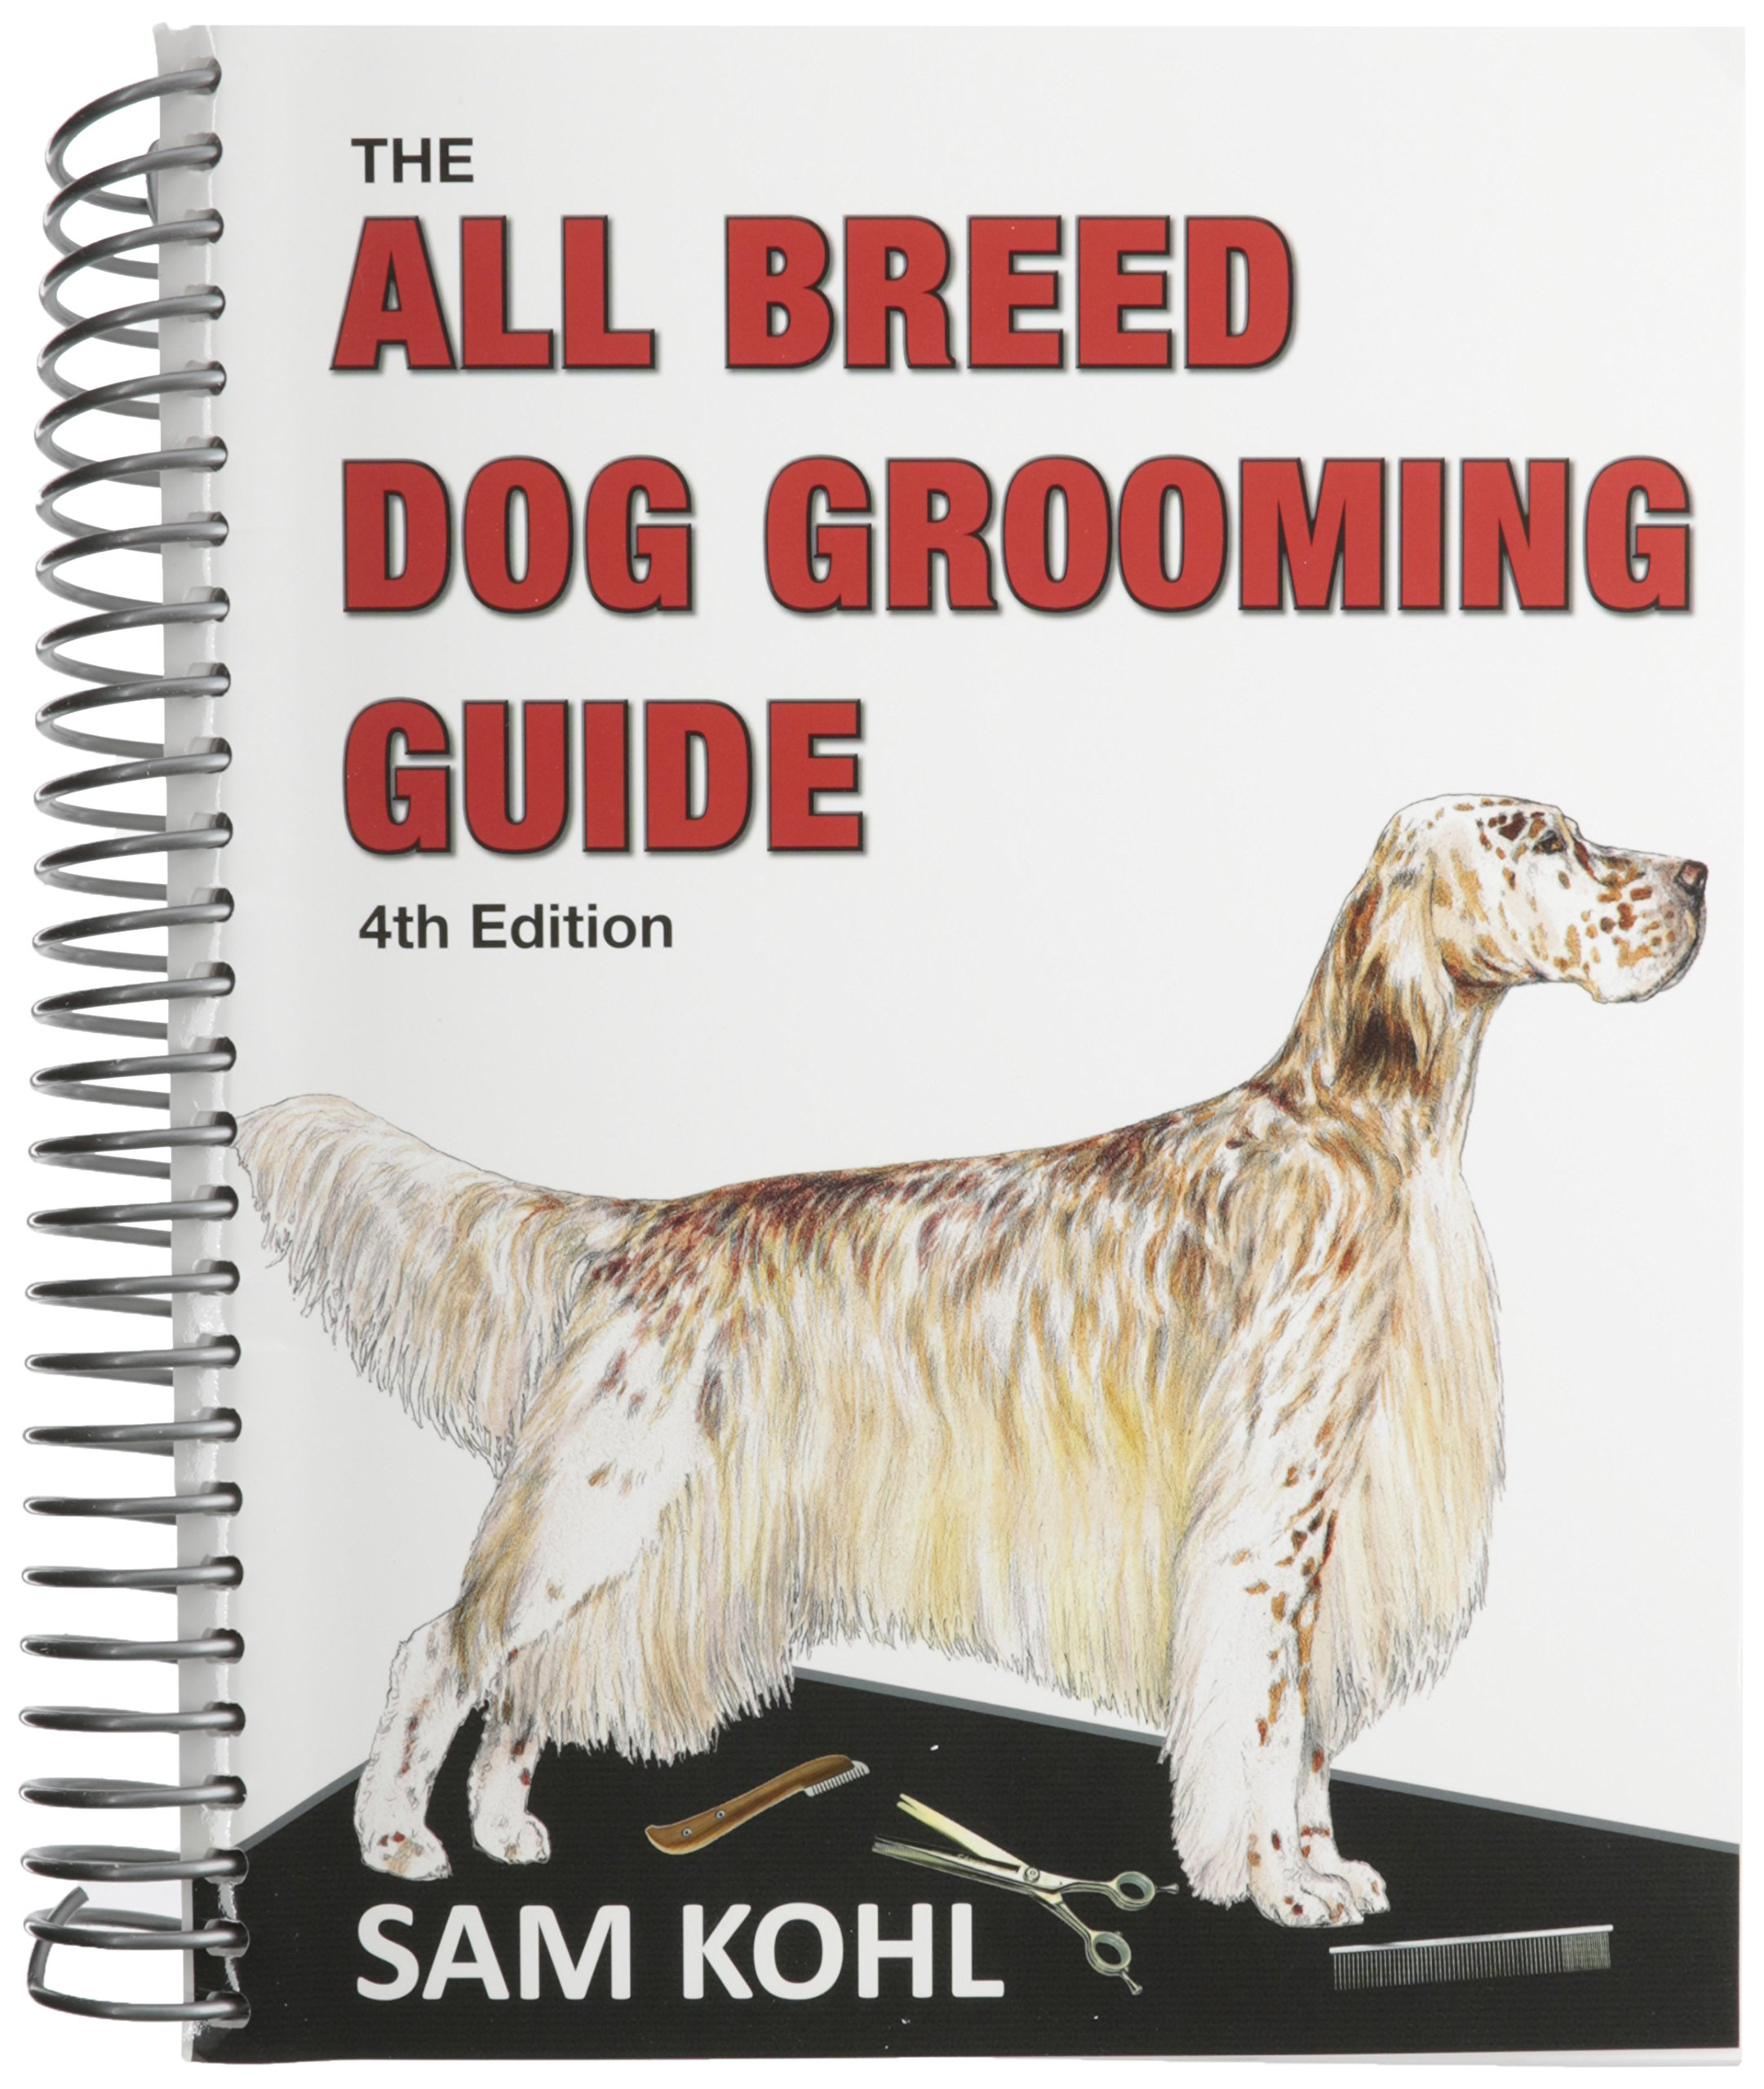 The All Breed Dog Grooming Guide: Sam Kohl: 0729775016206: Amazon.com: Books